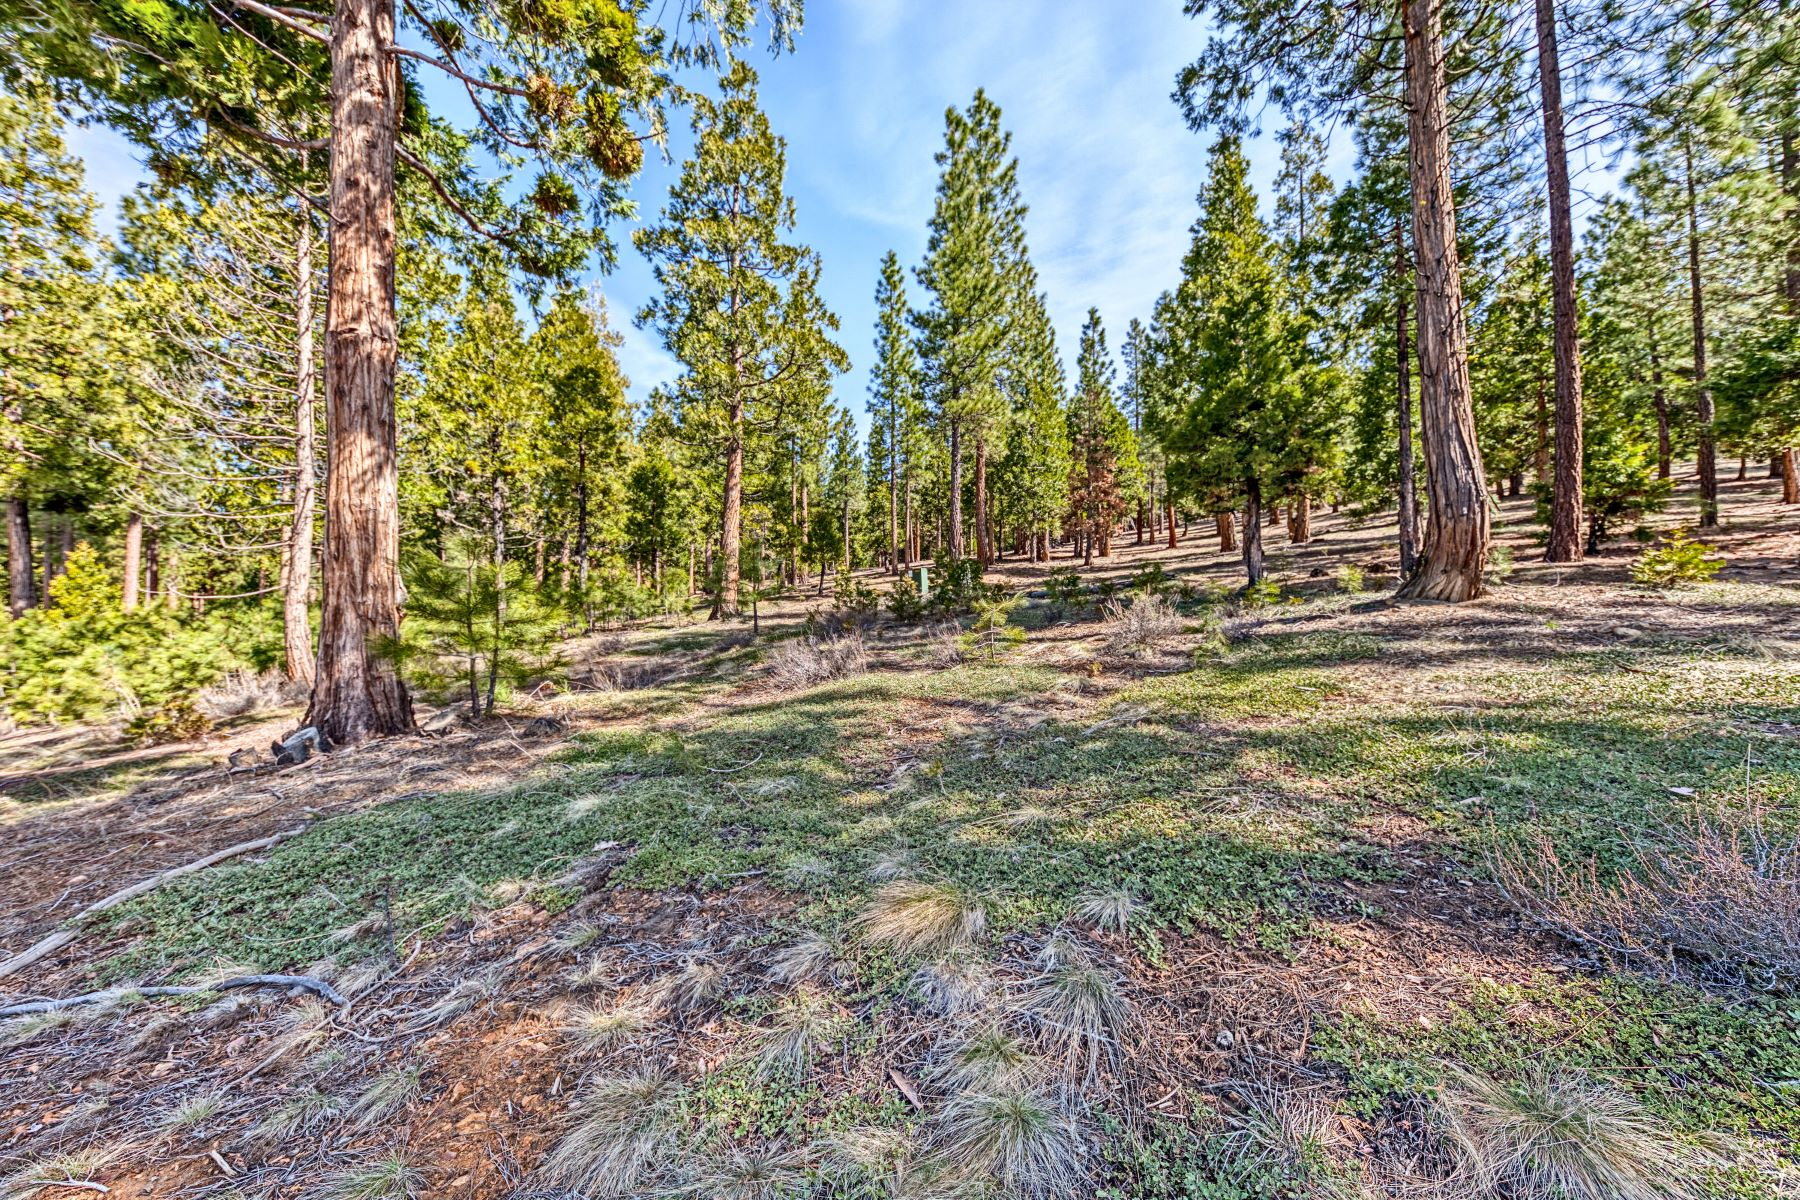 Additional photo for property listing at 696 Blacktail Ridge, Portola, CA, 96122 696 Blacktail Ridge Portola, California 96122 Estados Unidos